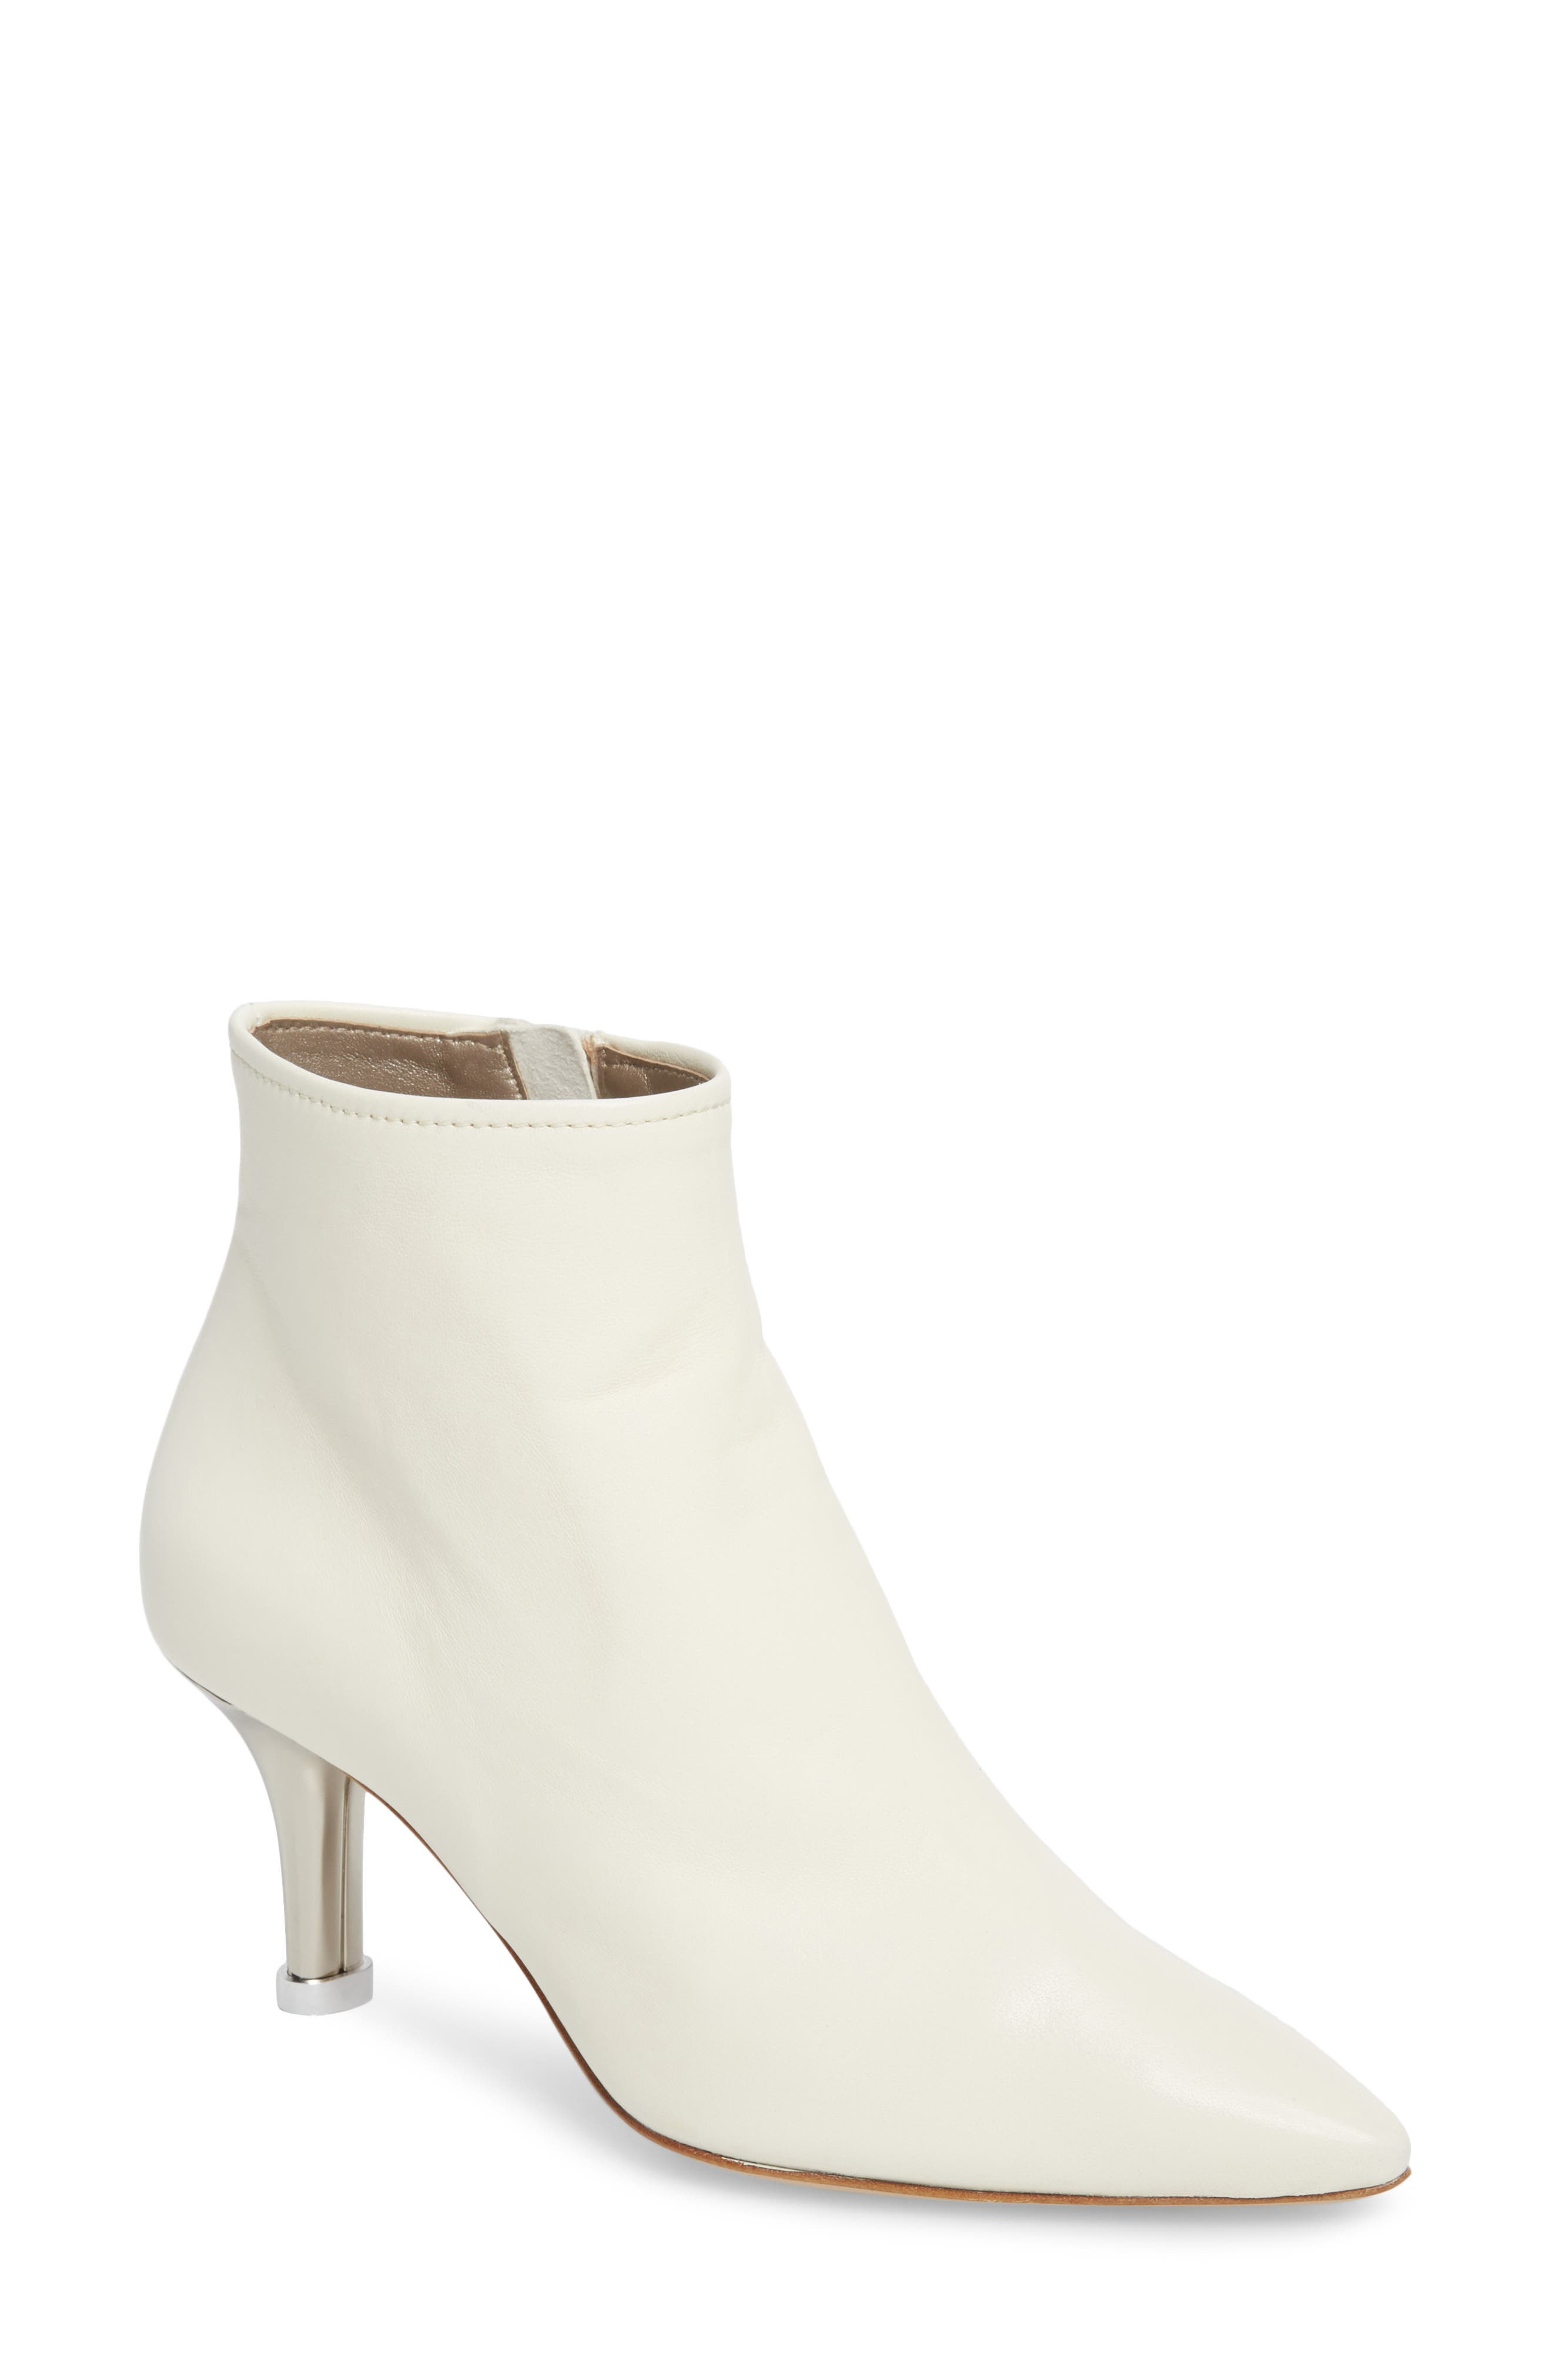 Summer Bootie,                             Main thumbnail 1, color,                             OFF WHITE LEATHER